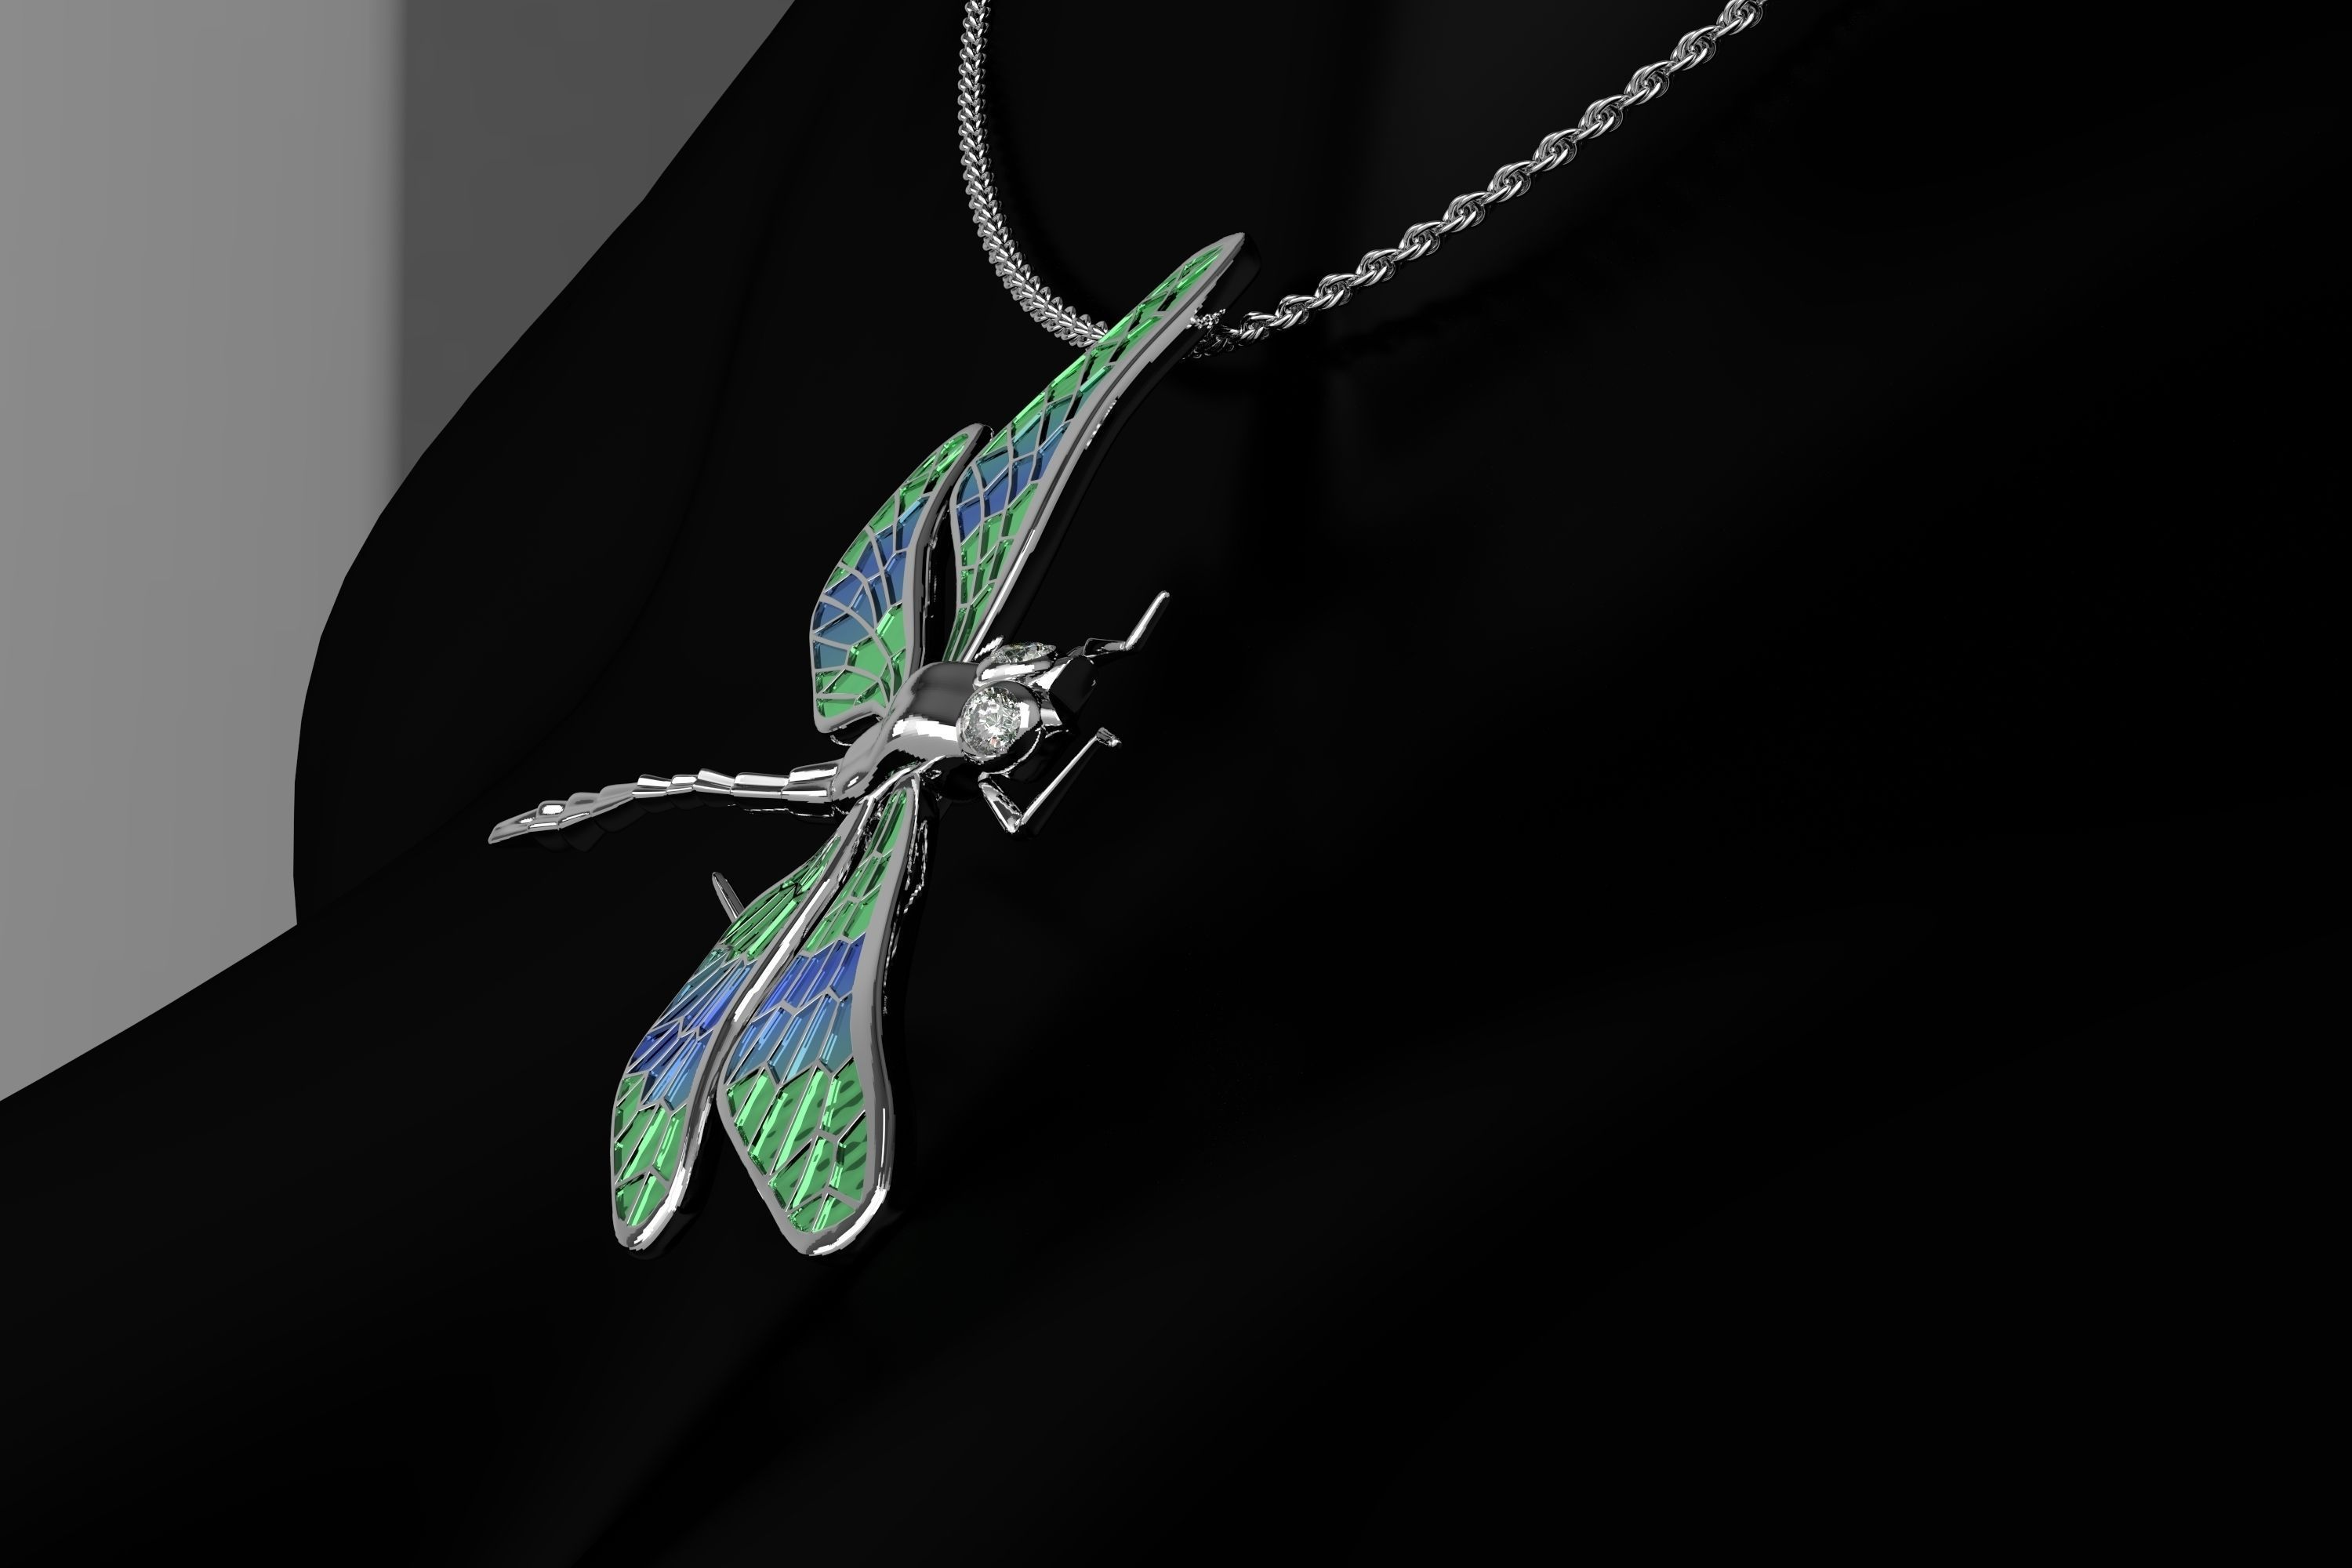 pin dragonfly pinterest necklace sliver stuff pendant turquoise sterling